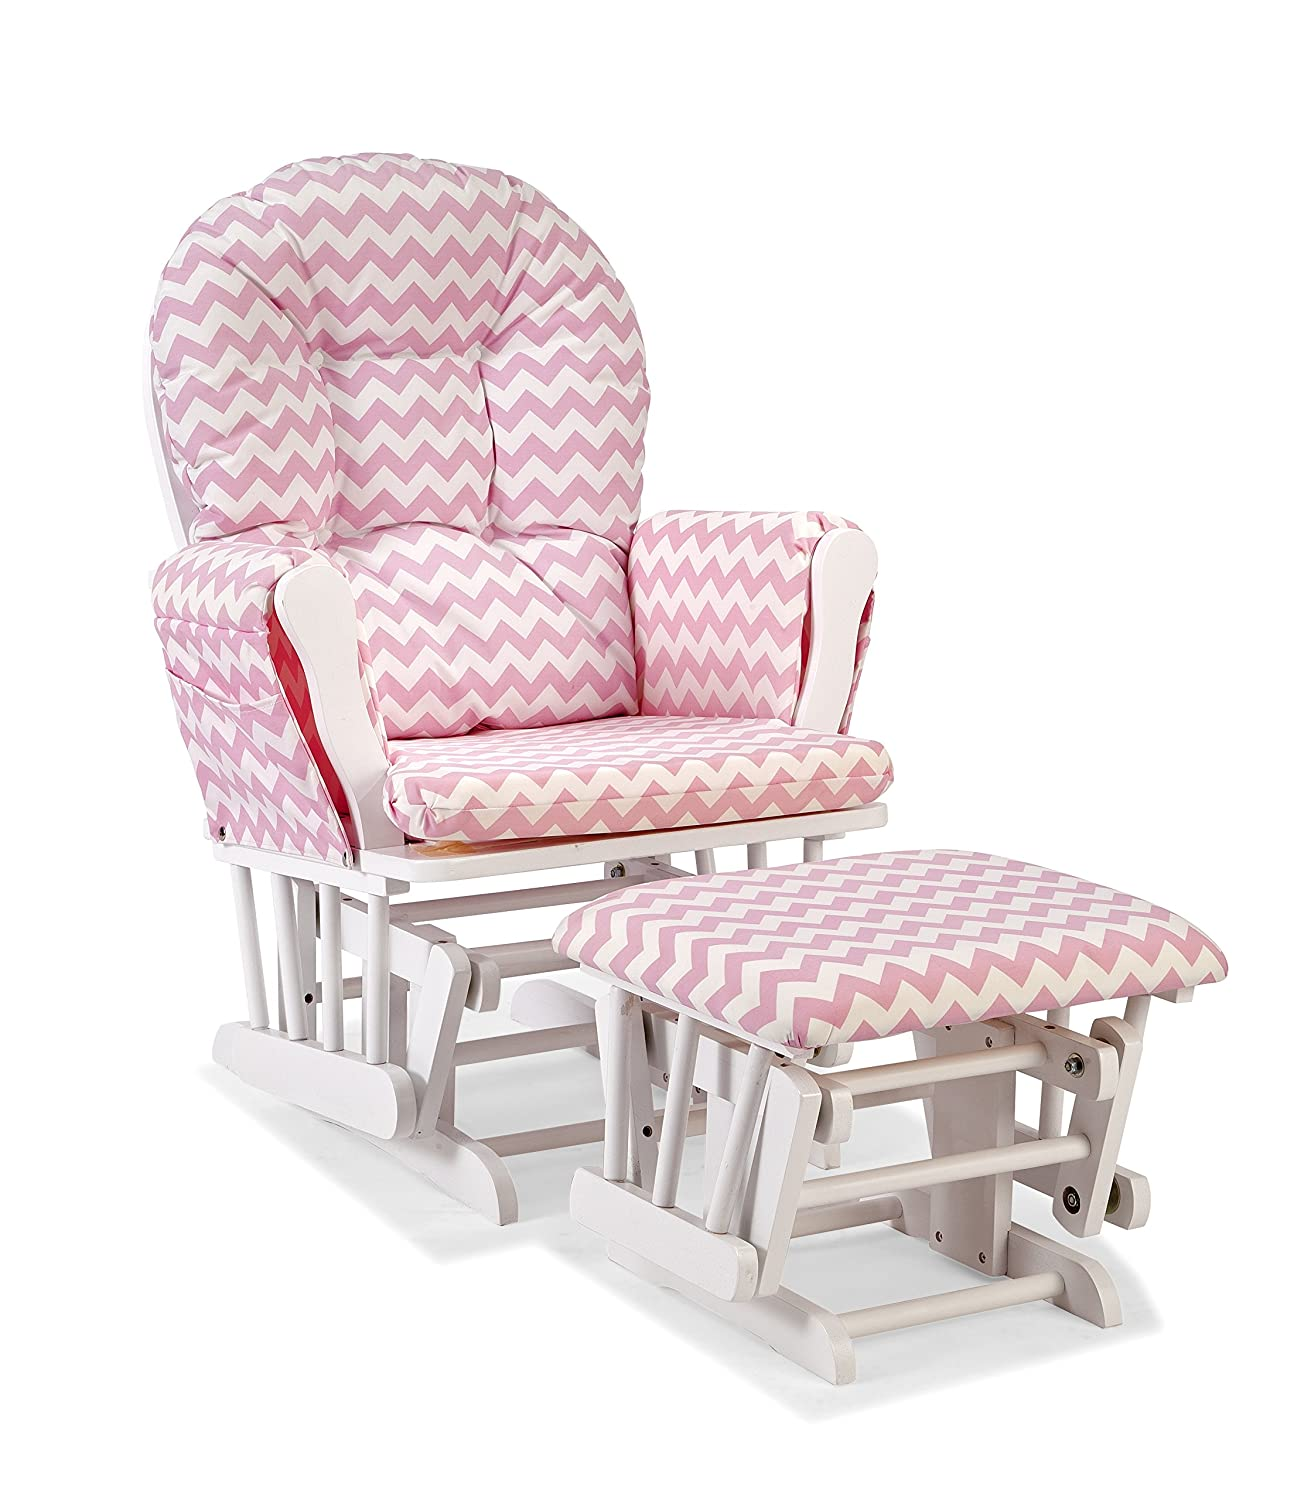 Storkcraft Hoop Custom Glider and Ottoman, White/Pink Chevron 06550-6121